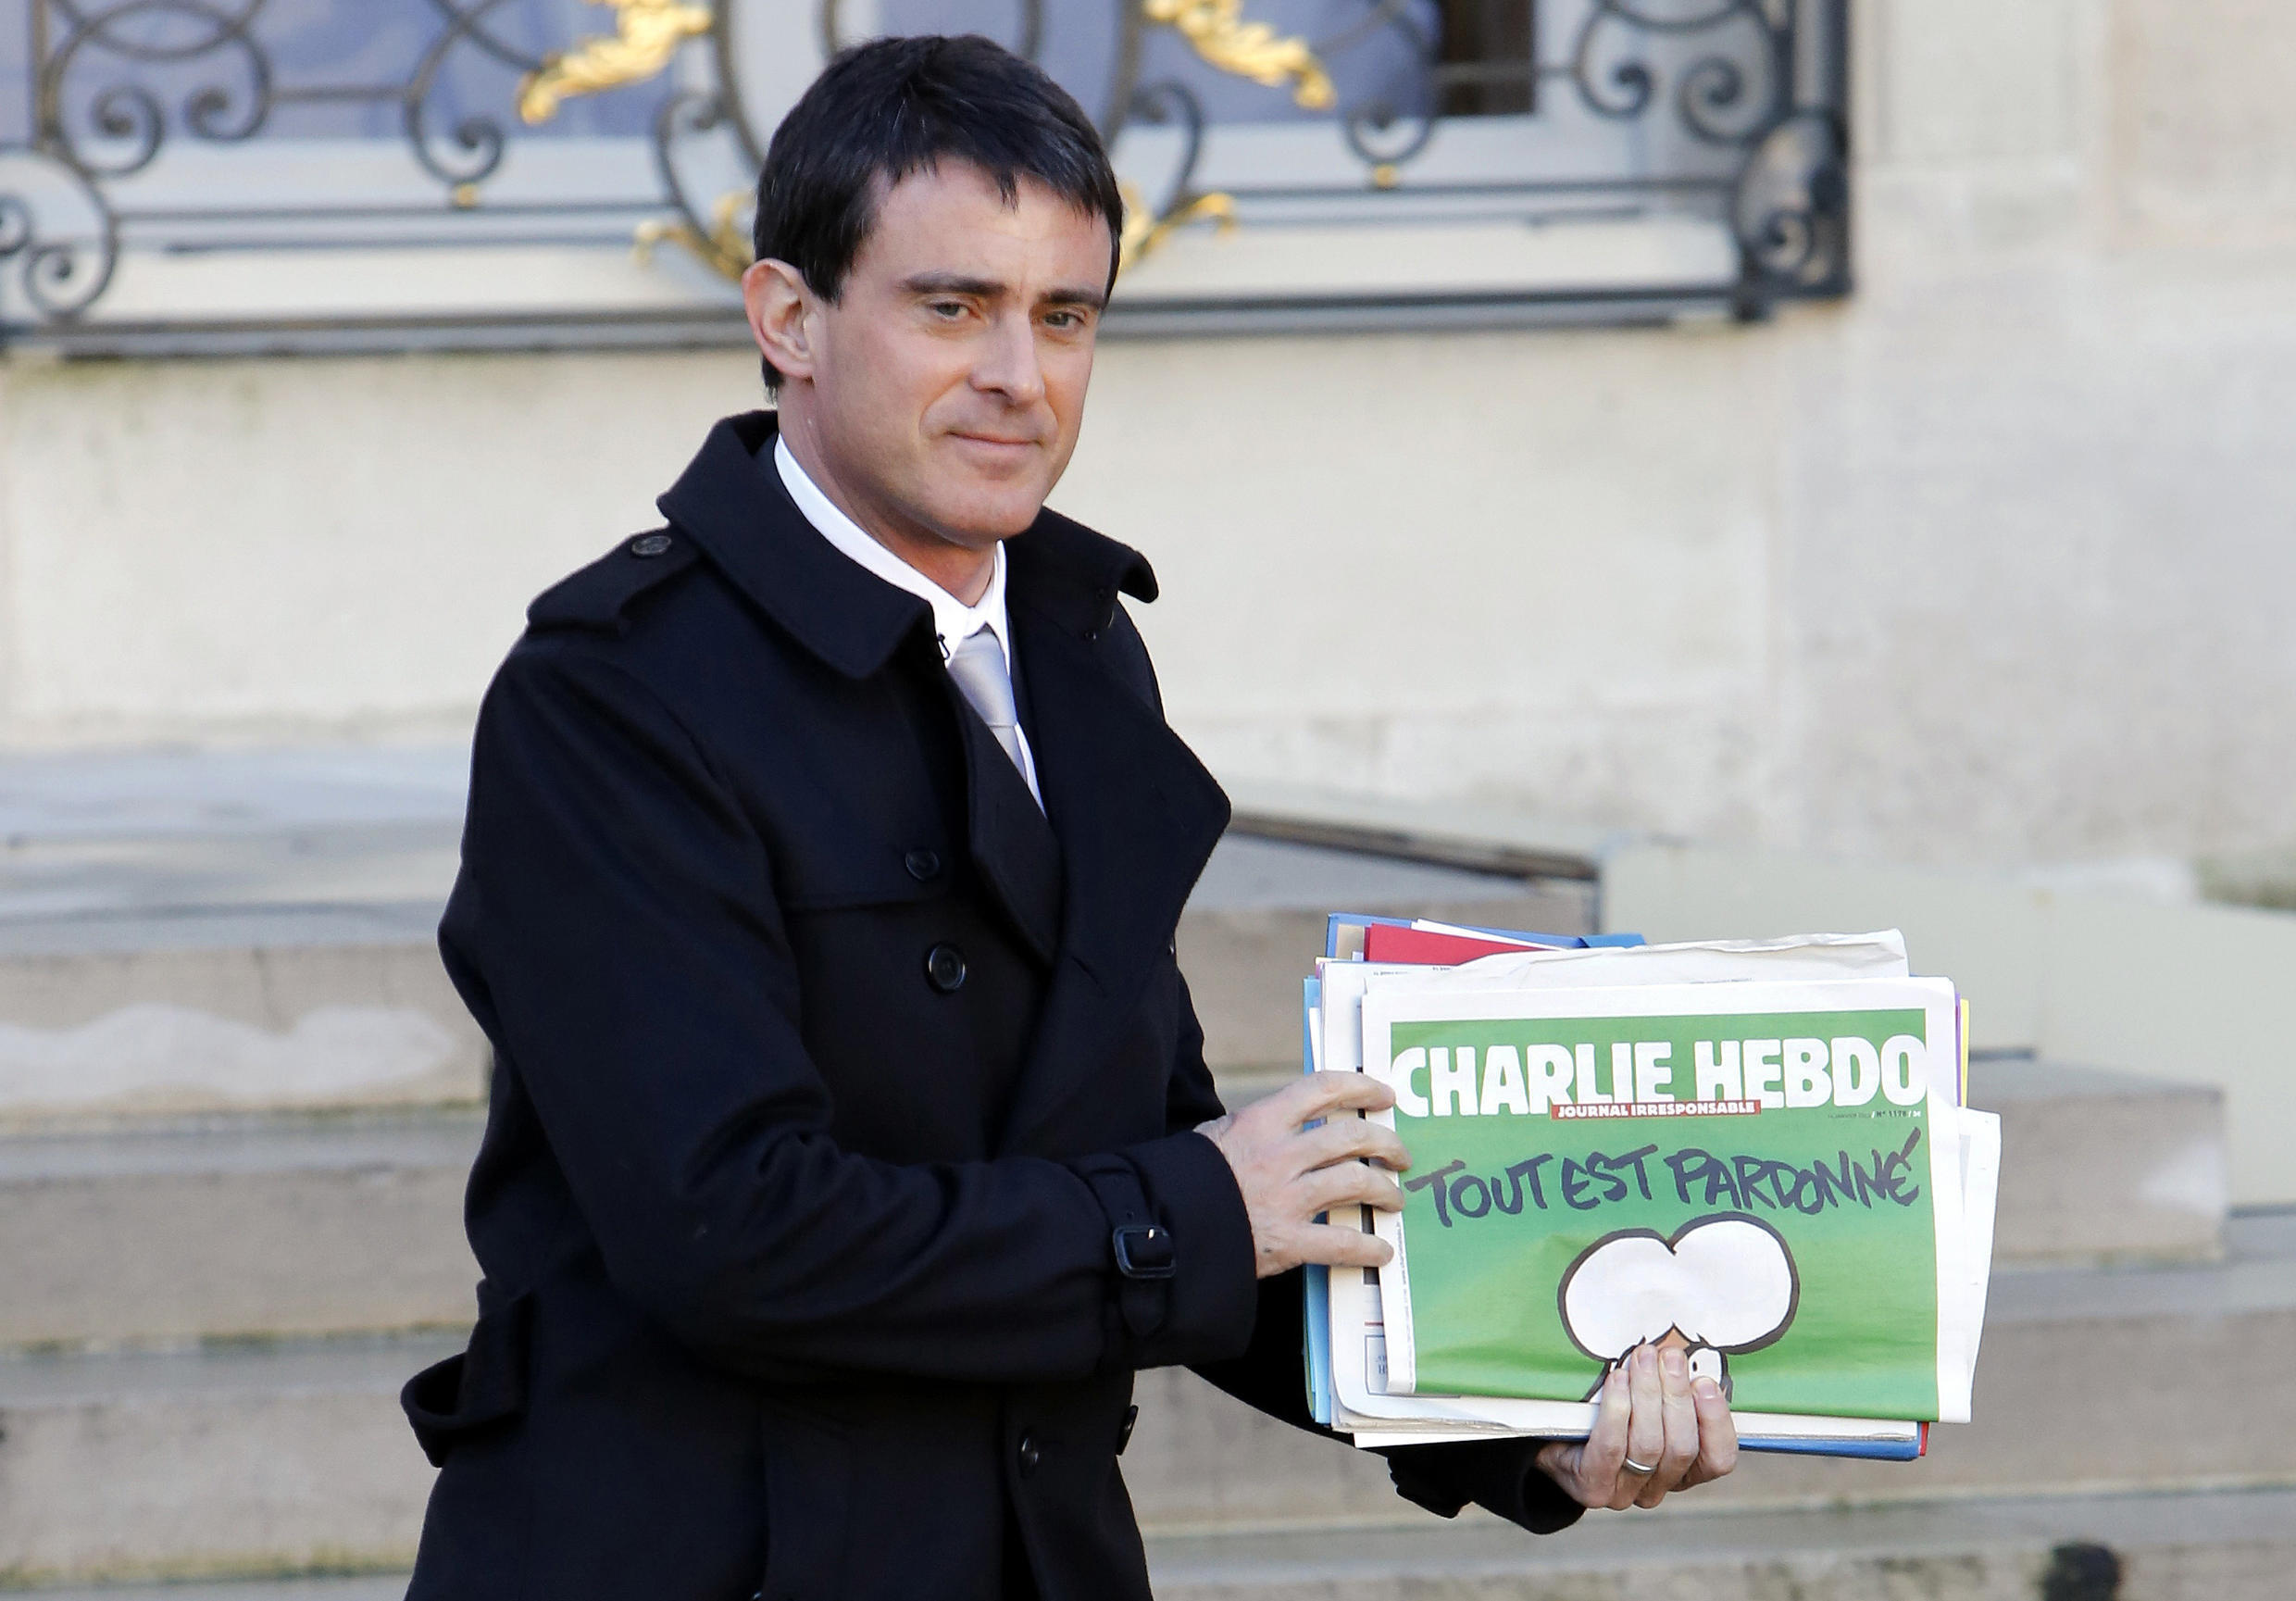 Manuel Valls, carrying the latest edition of Charlie Hebdo, 14 Jan, 2015